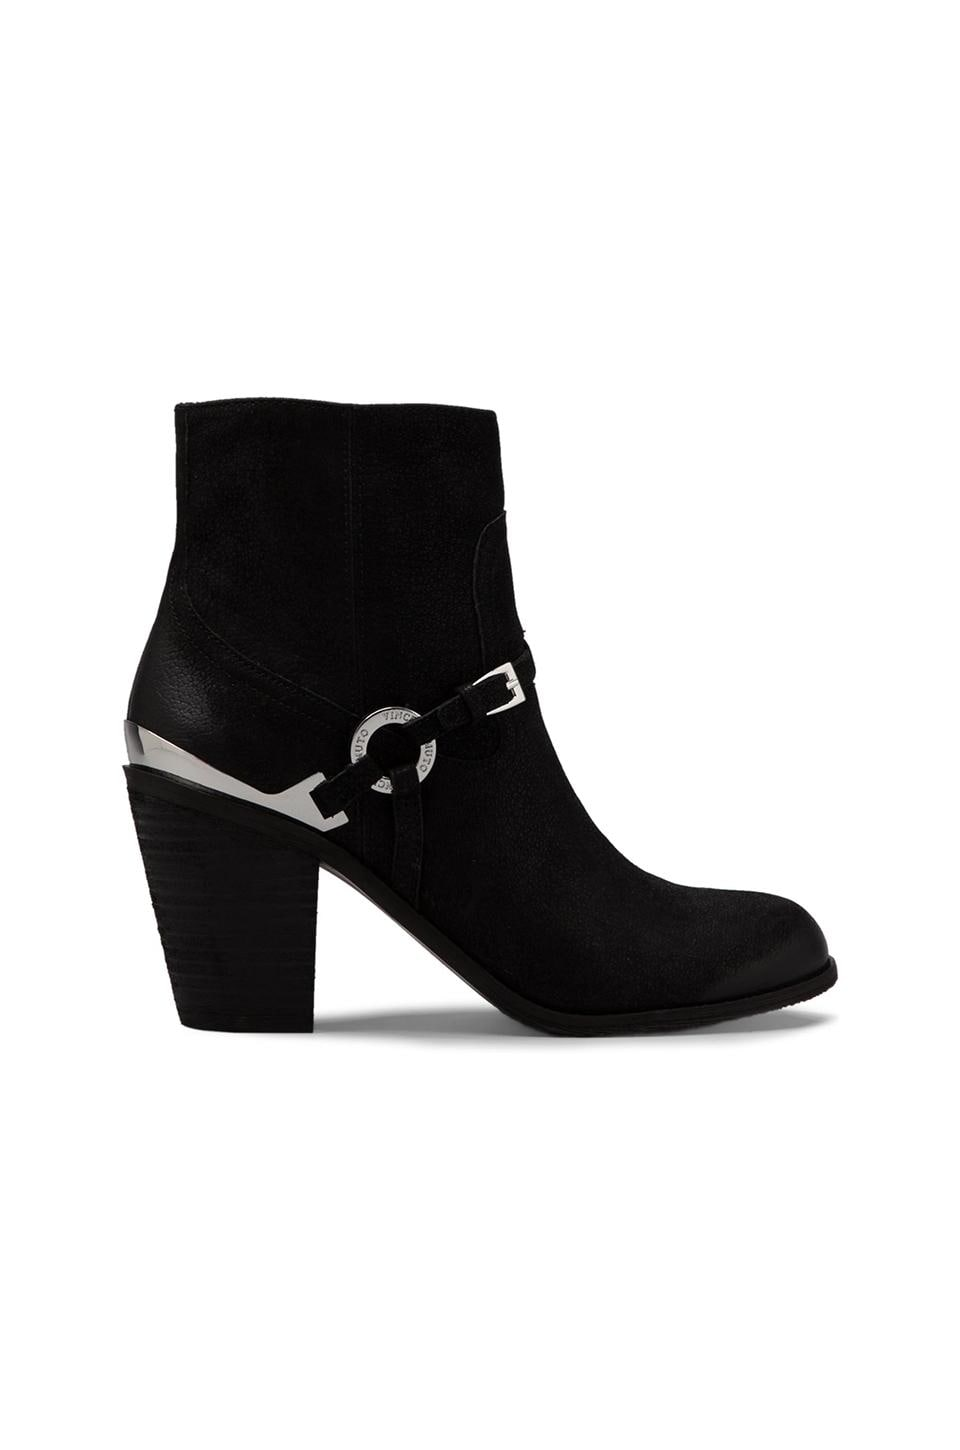 Vince Camuto Gregger Bootie in Black